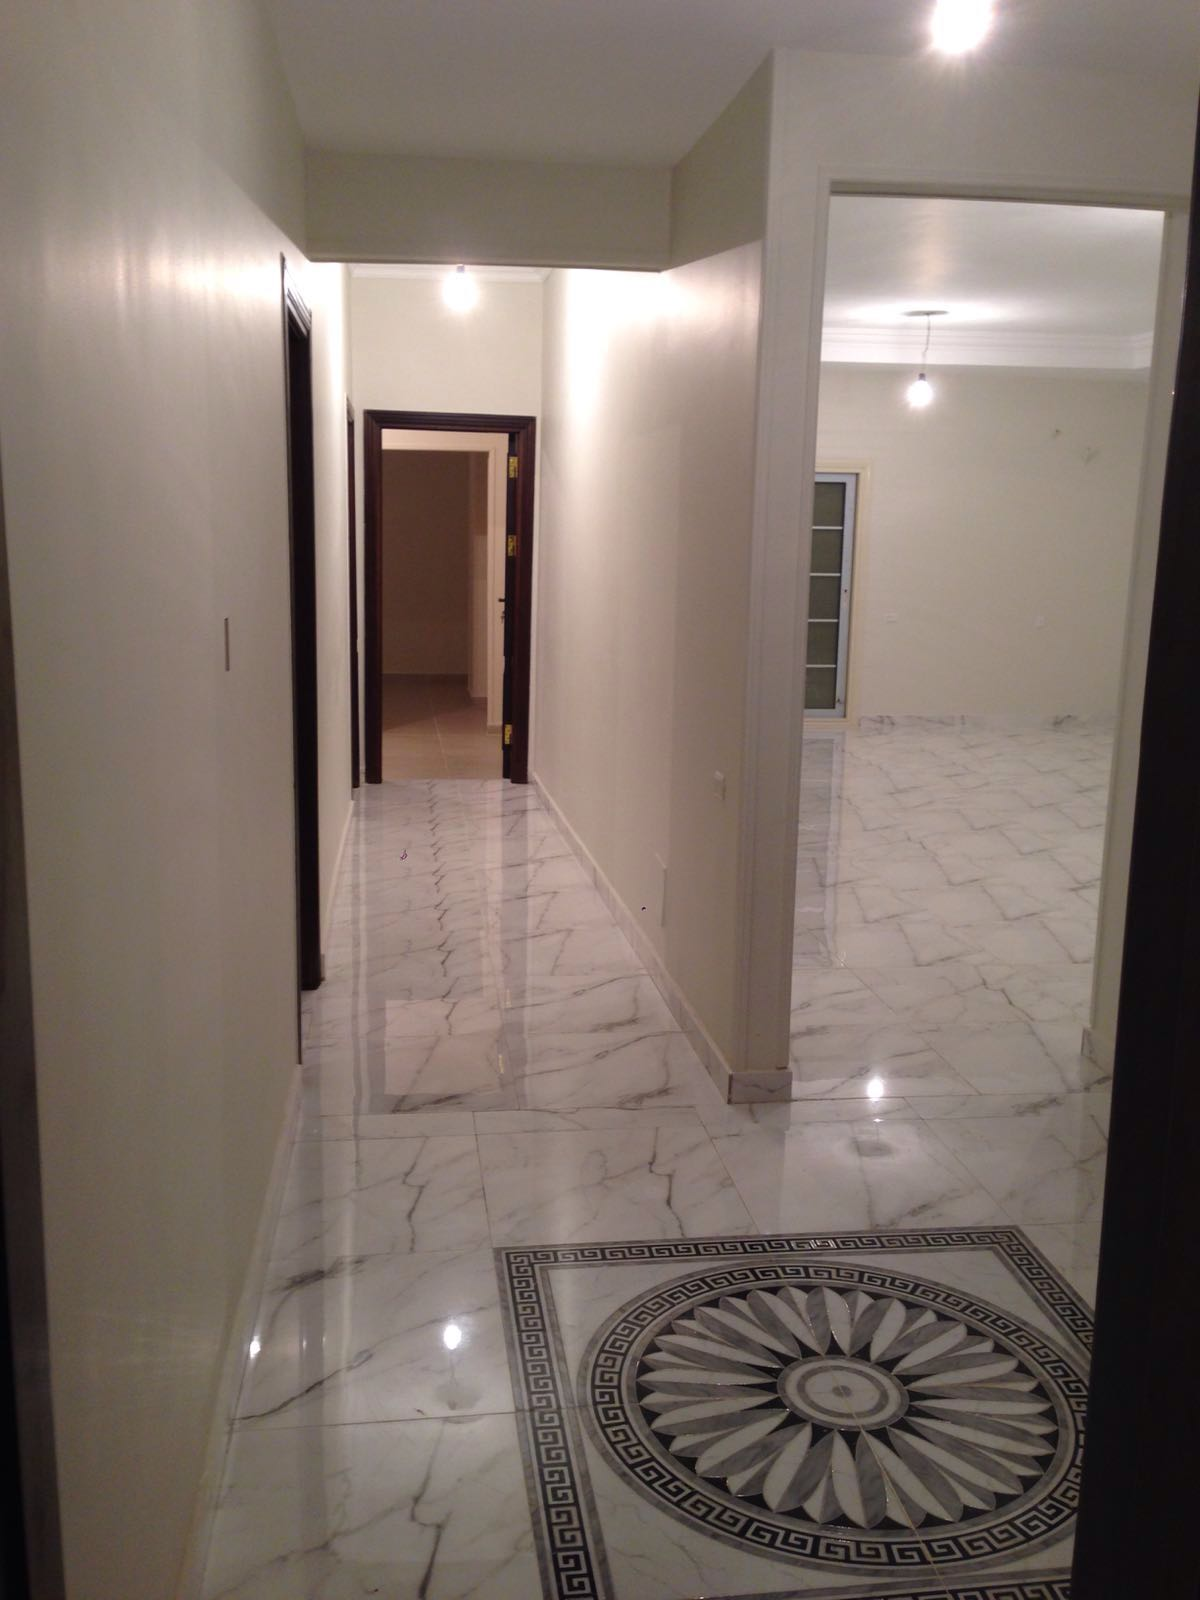 Apartment for rent  Villas yasmine first District  New Cairo